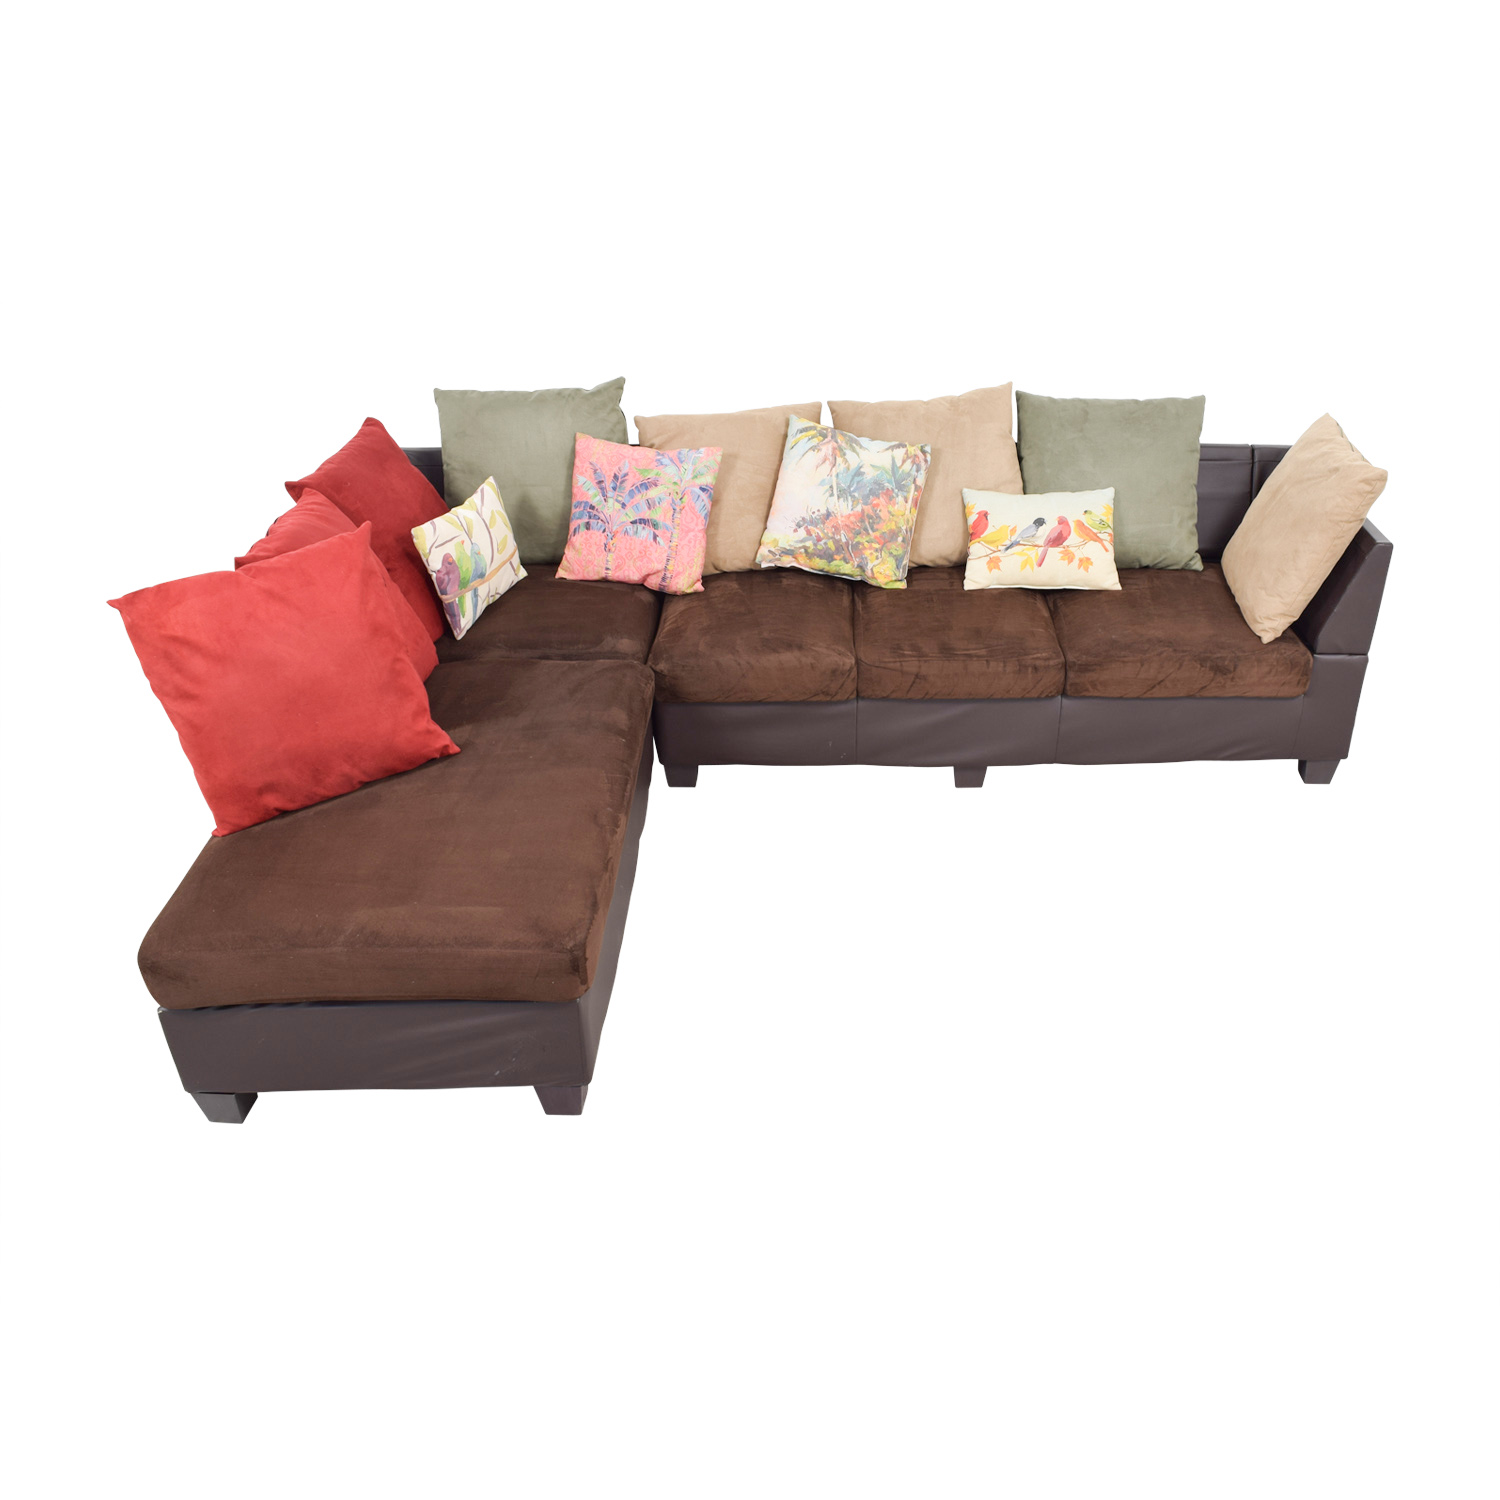 buy Downtown Furniture Downtown Furniture Brown Multi-Fabric L-Shapes Sectional with Toss Pillows online